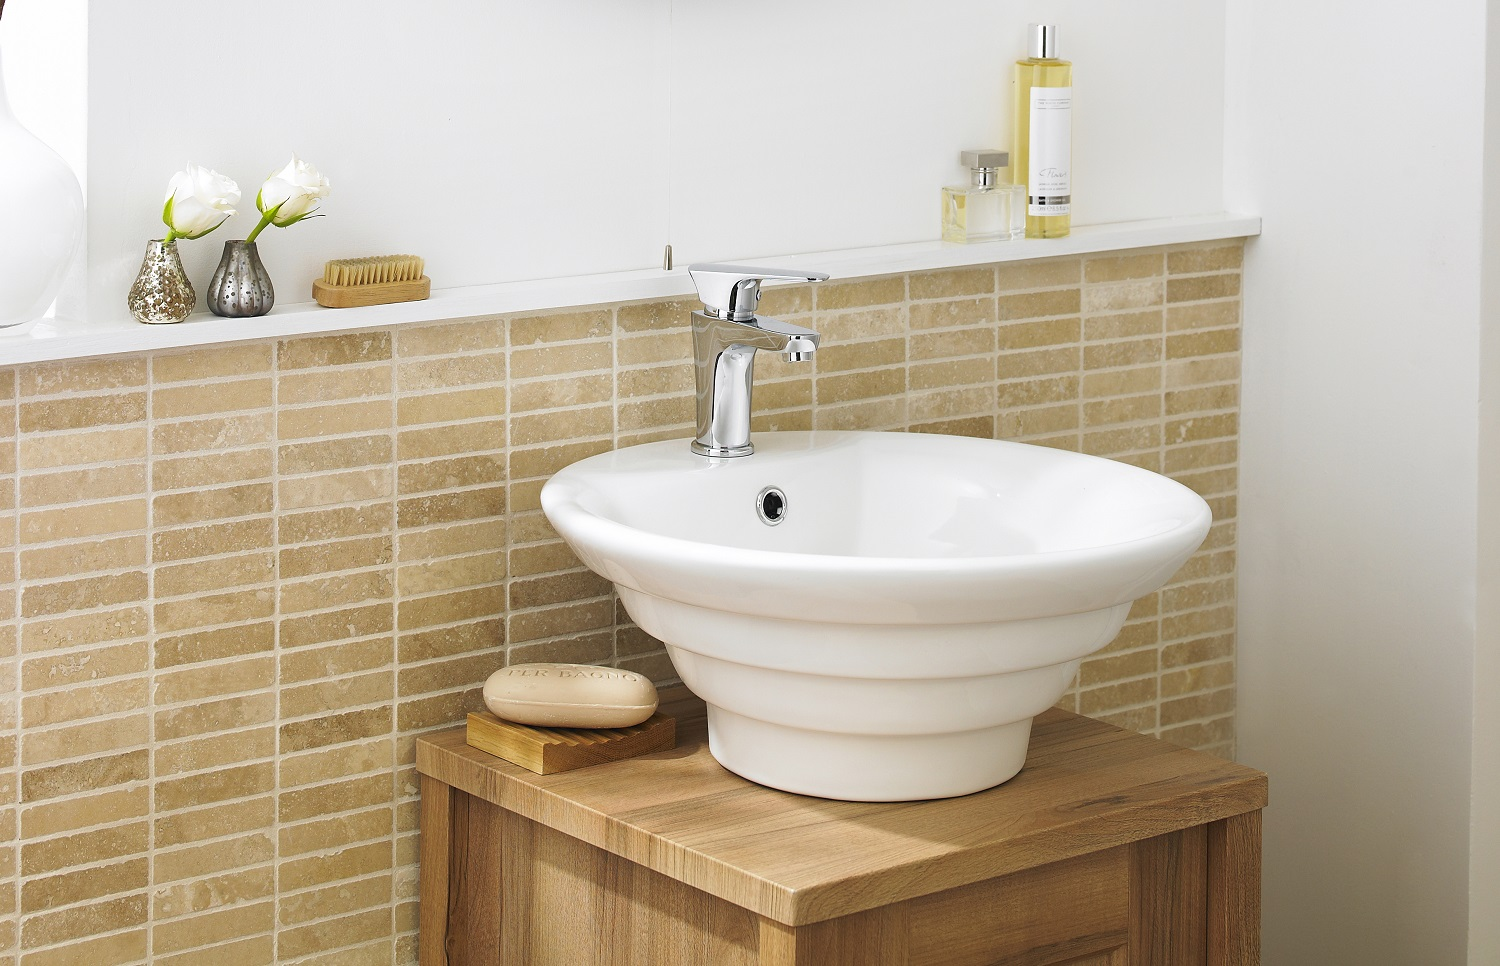 Bathroom Sinks - How to Choose the Best One